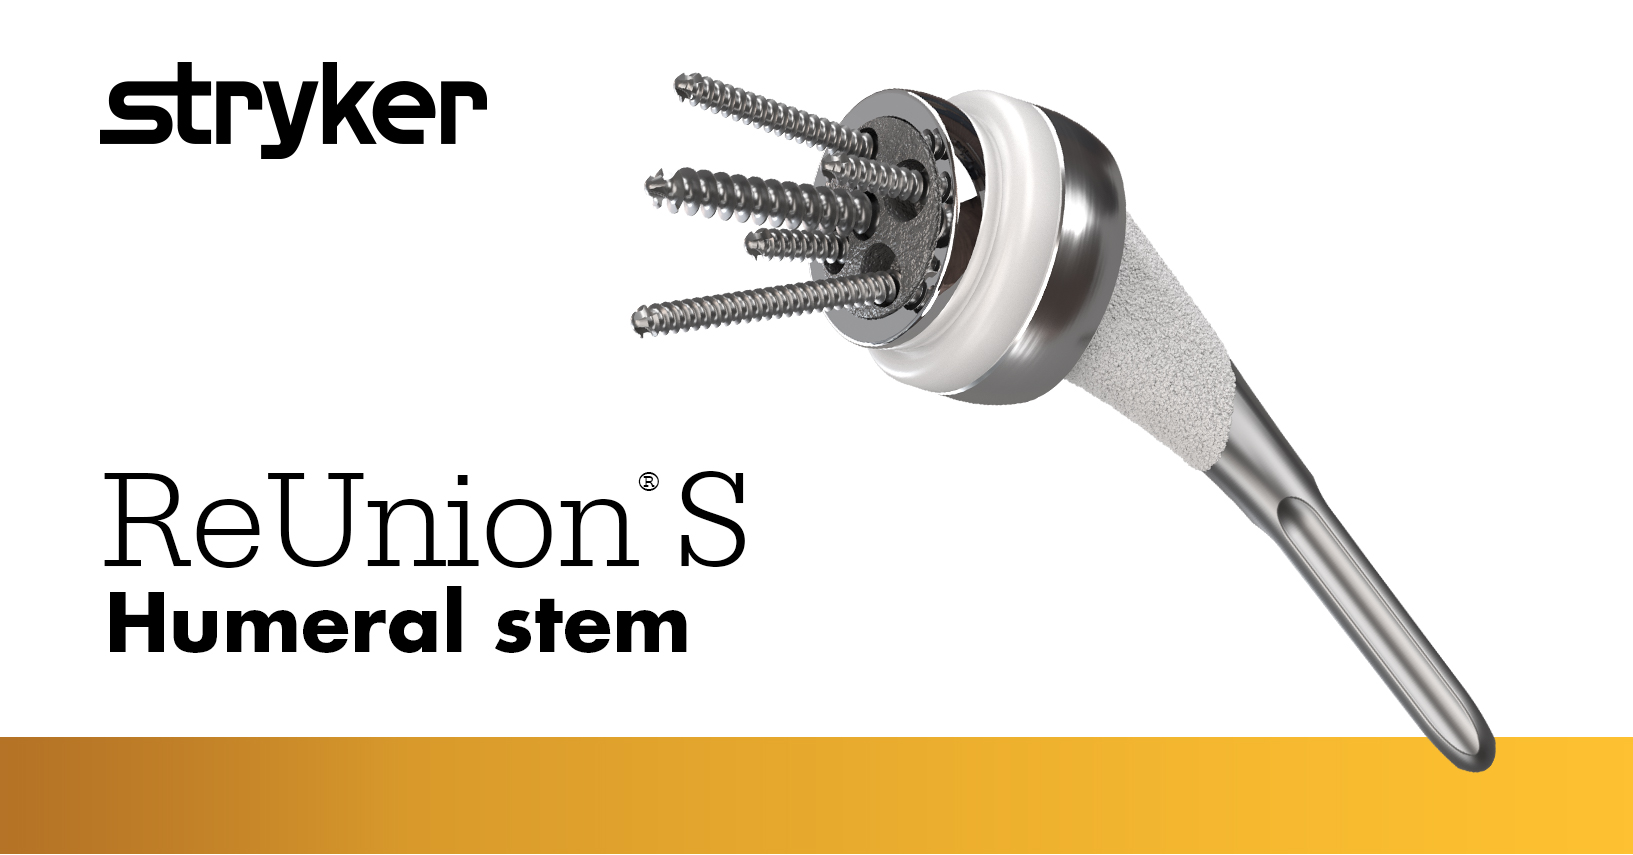 Stryker Endoscopy Competitors, Reviews, Marketing Contacts